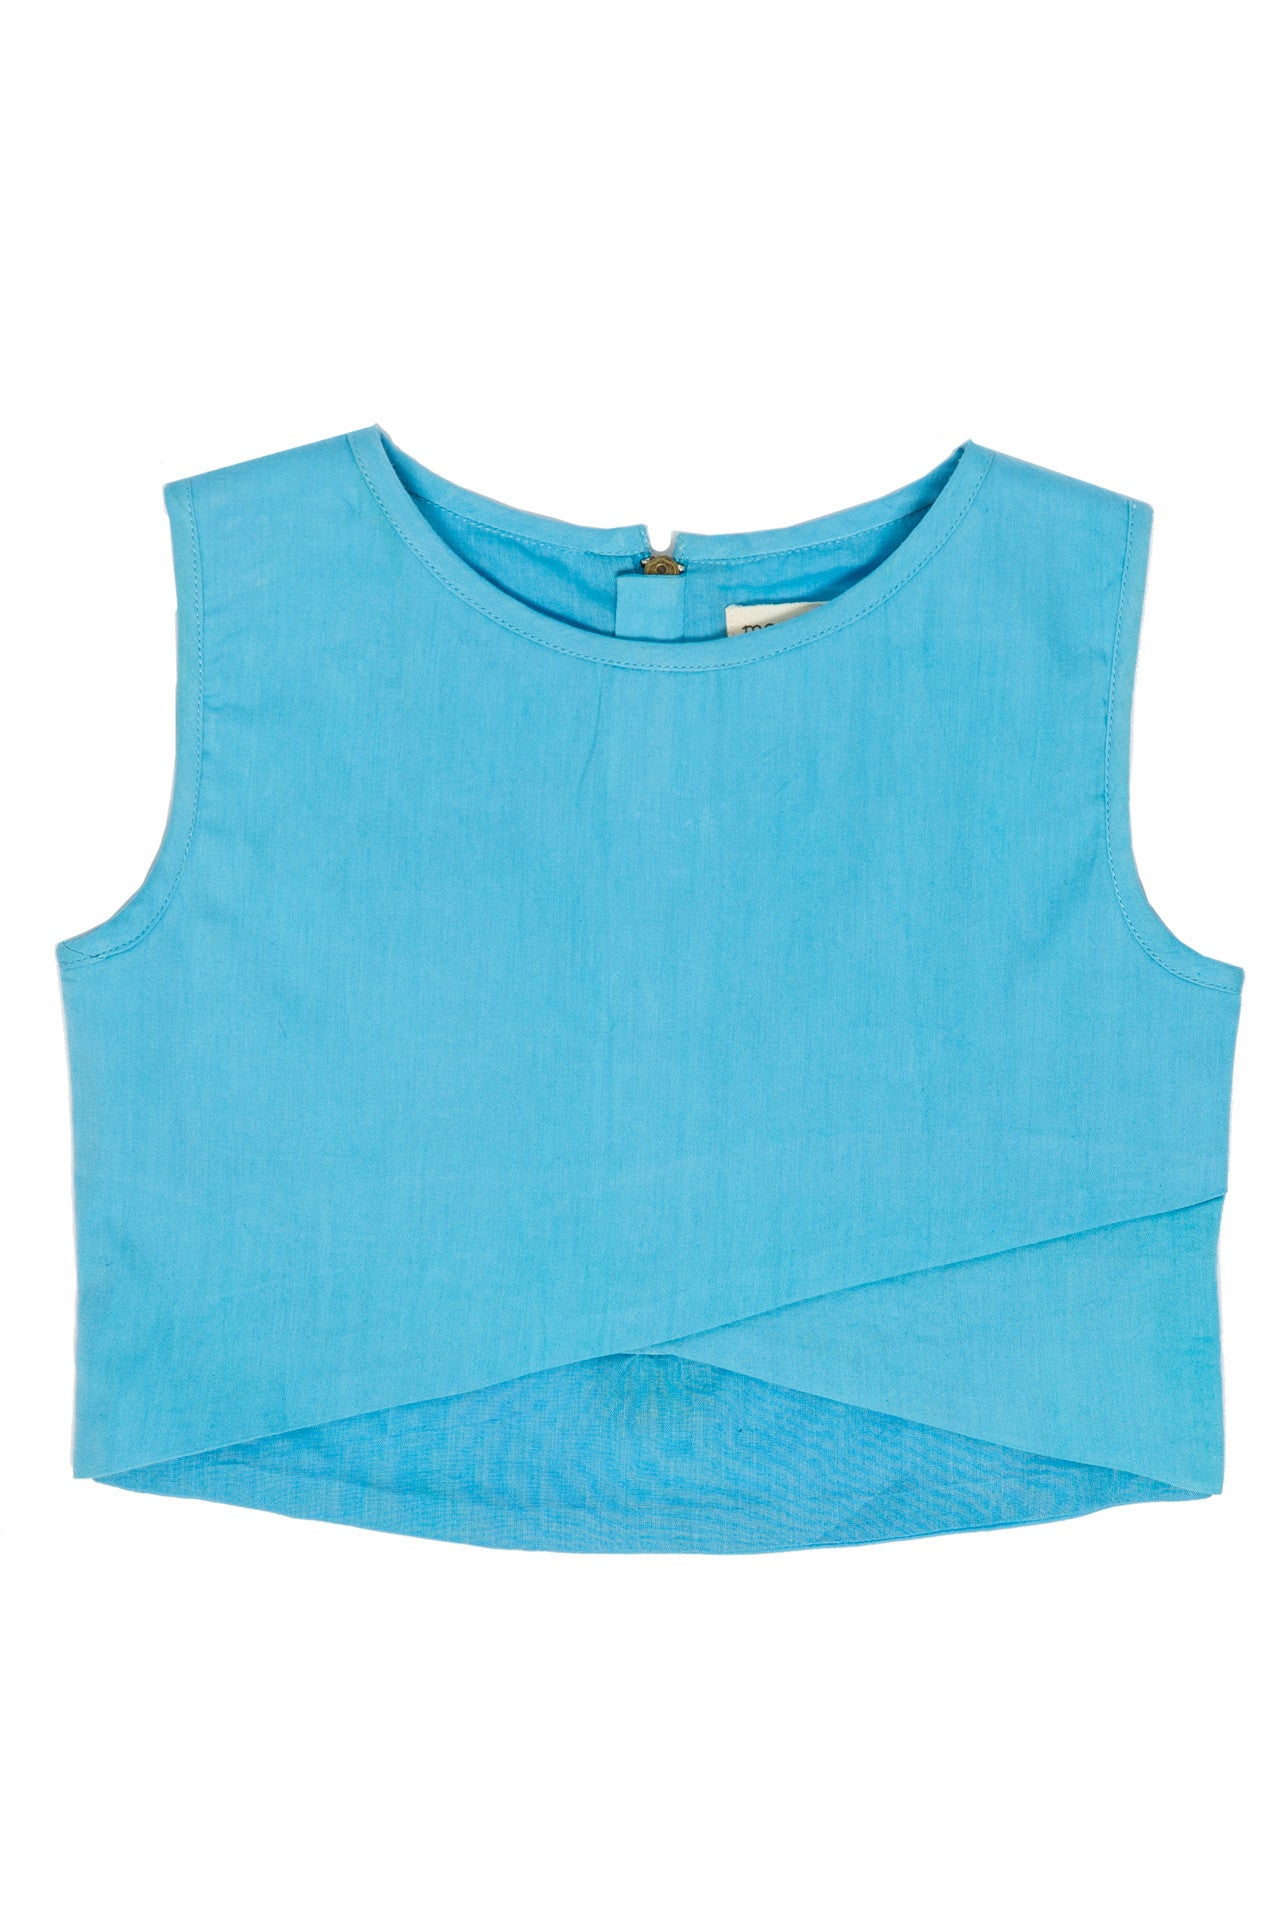 sleeveless crossover crop top